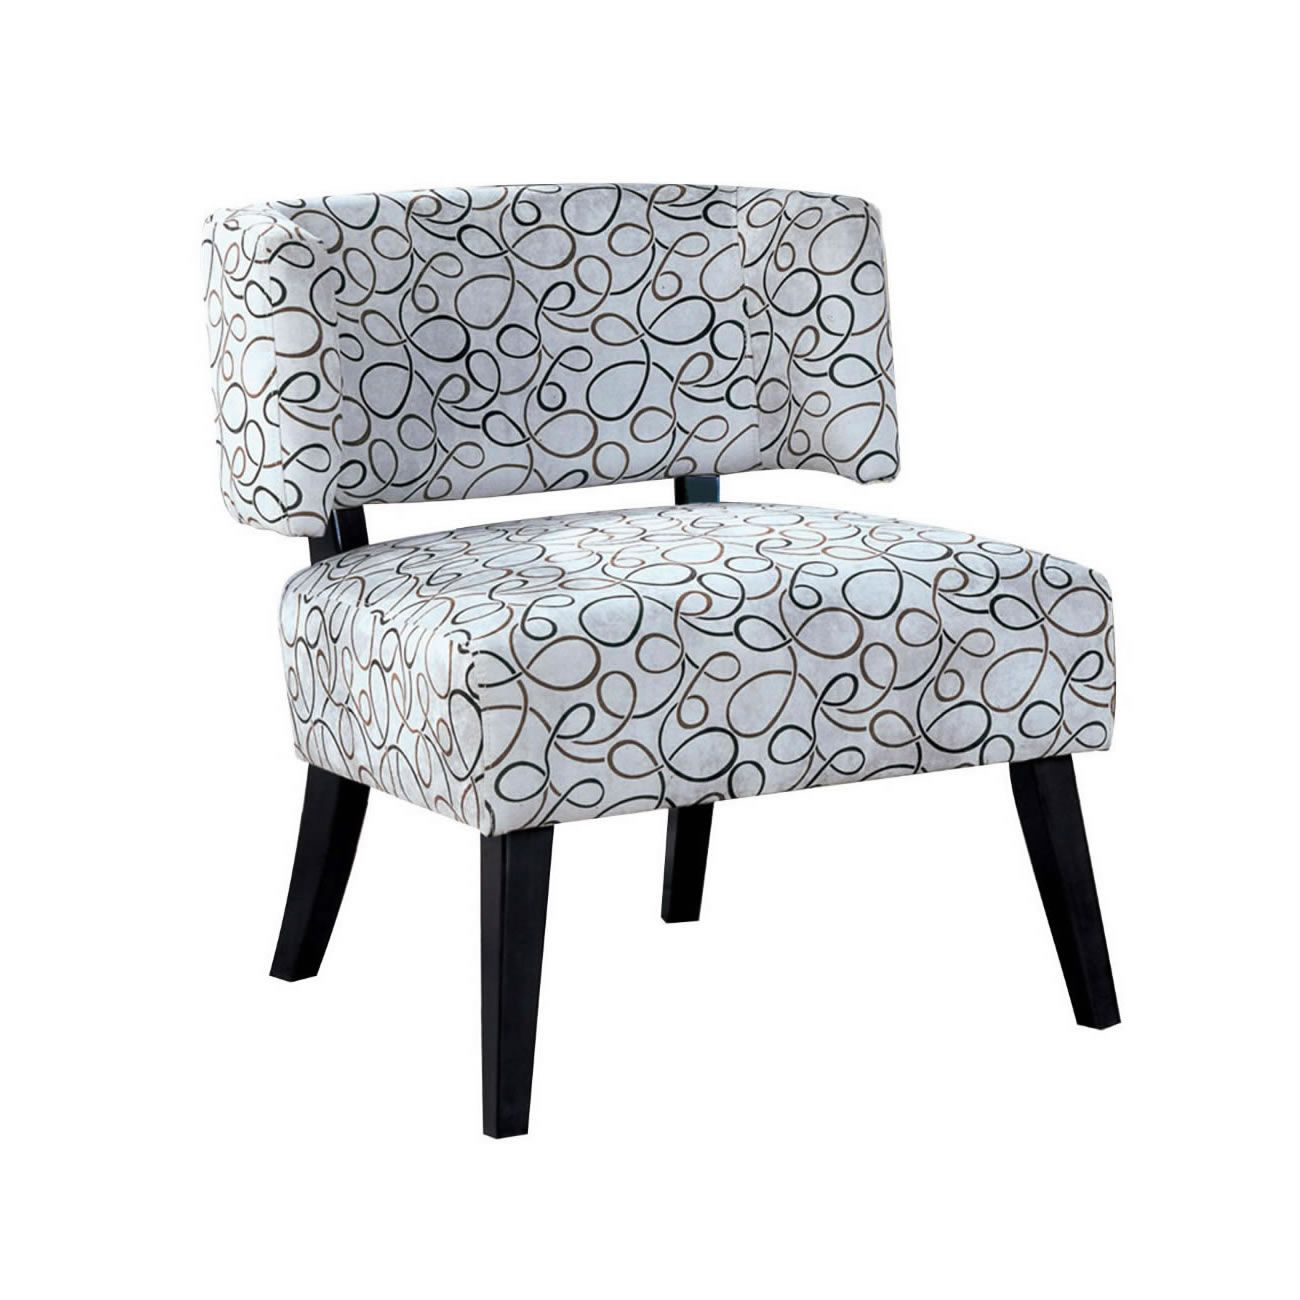 Features Transitional styling Curved back and full size